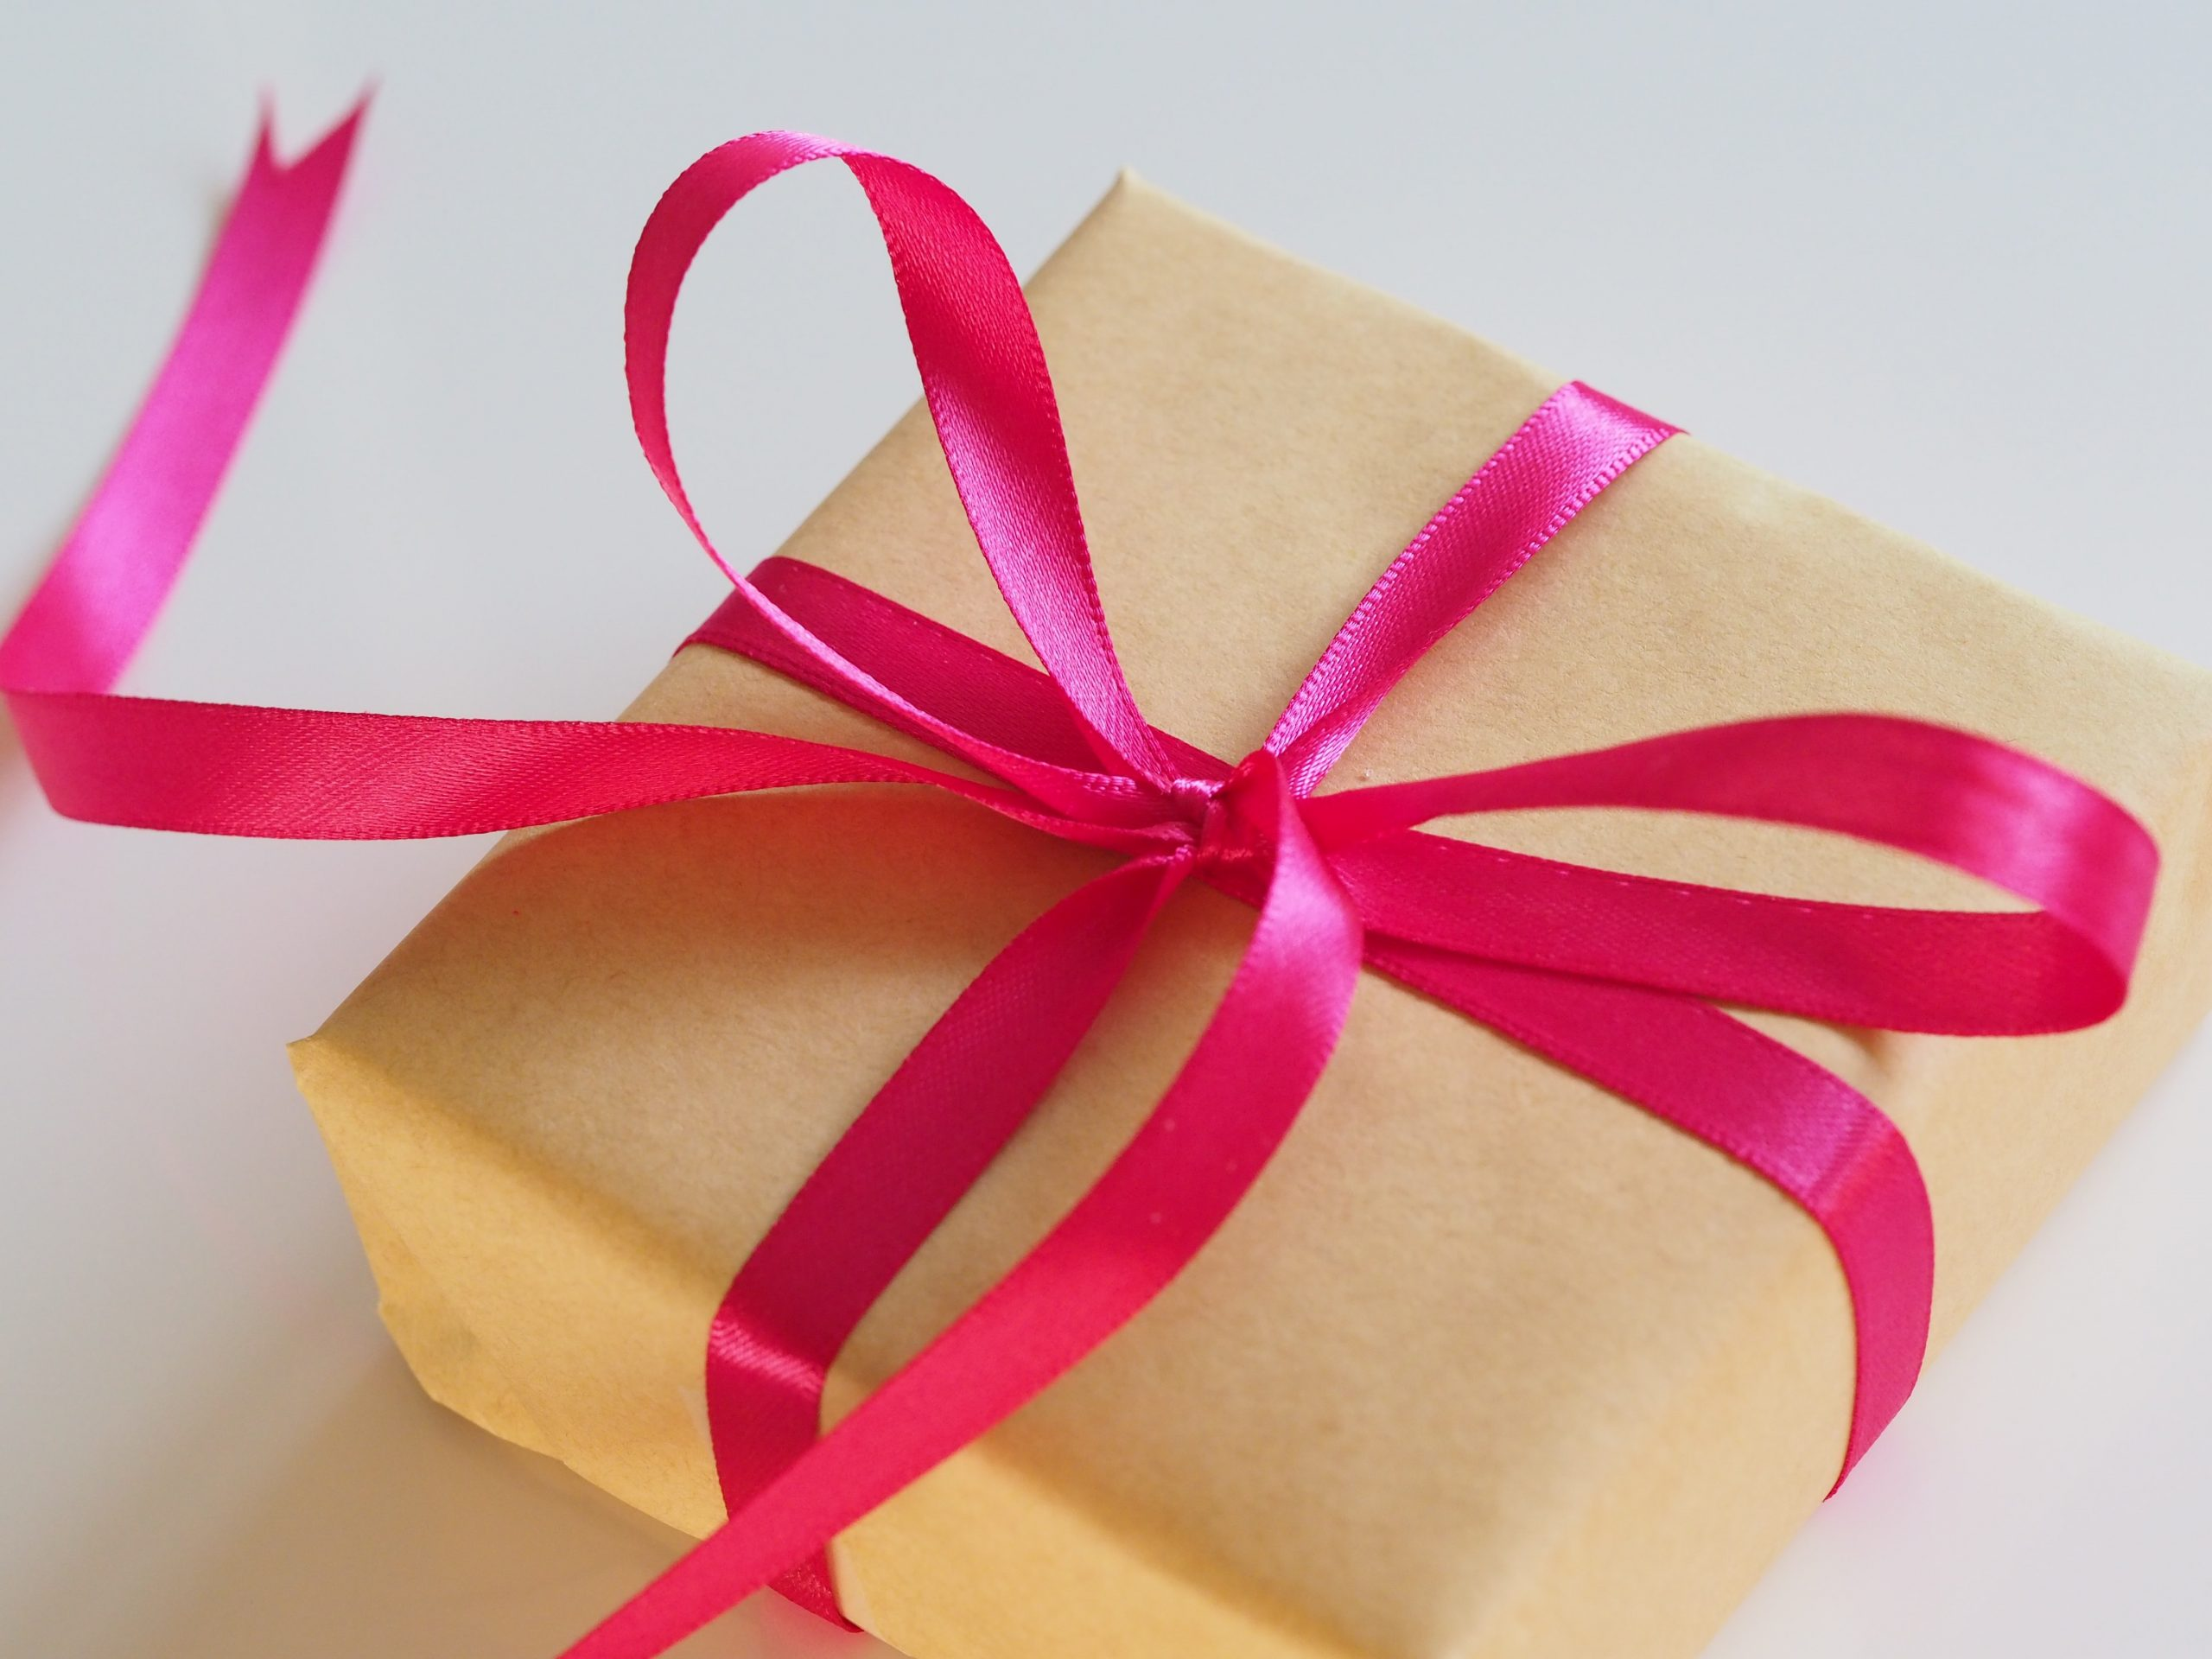 What is the symbolic meaning of perfume as a gift?